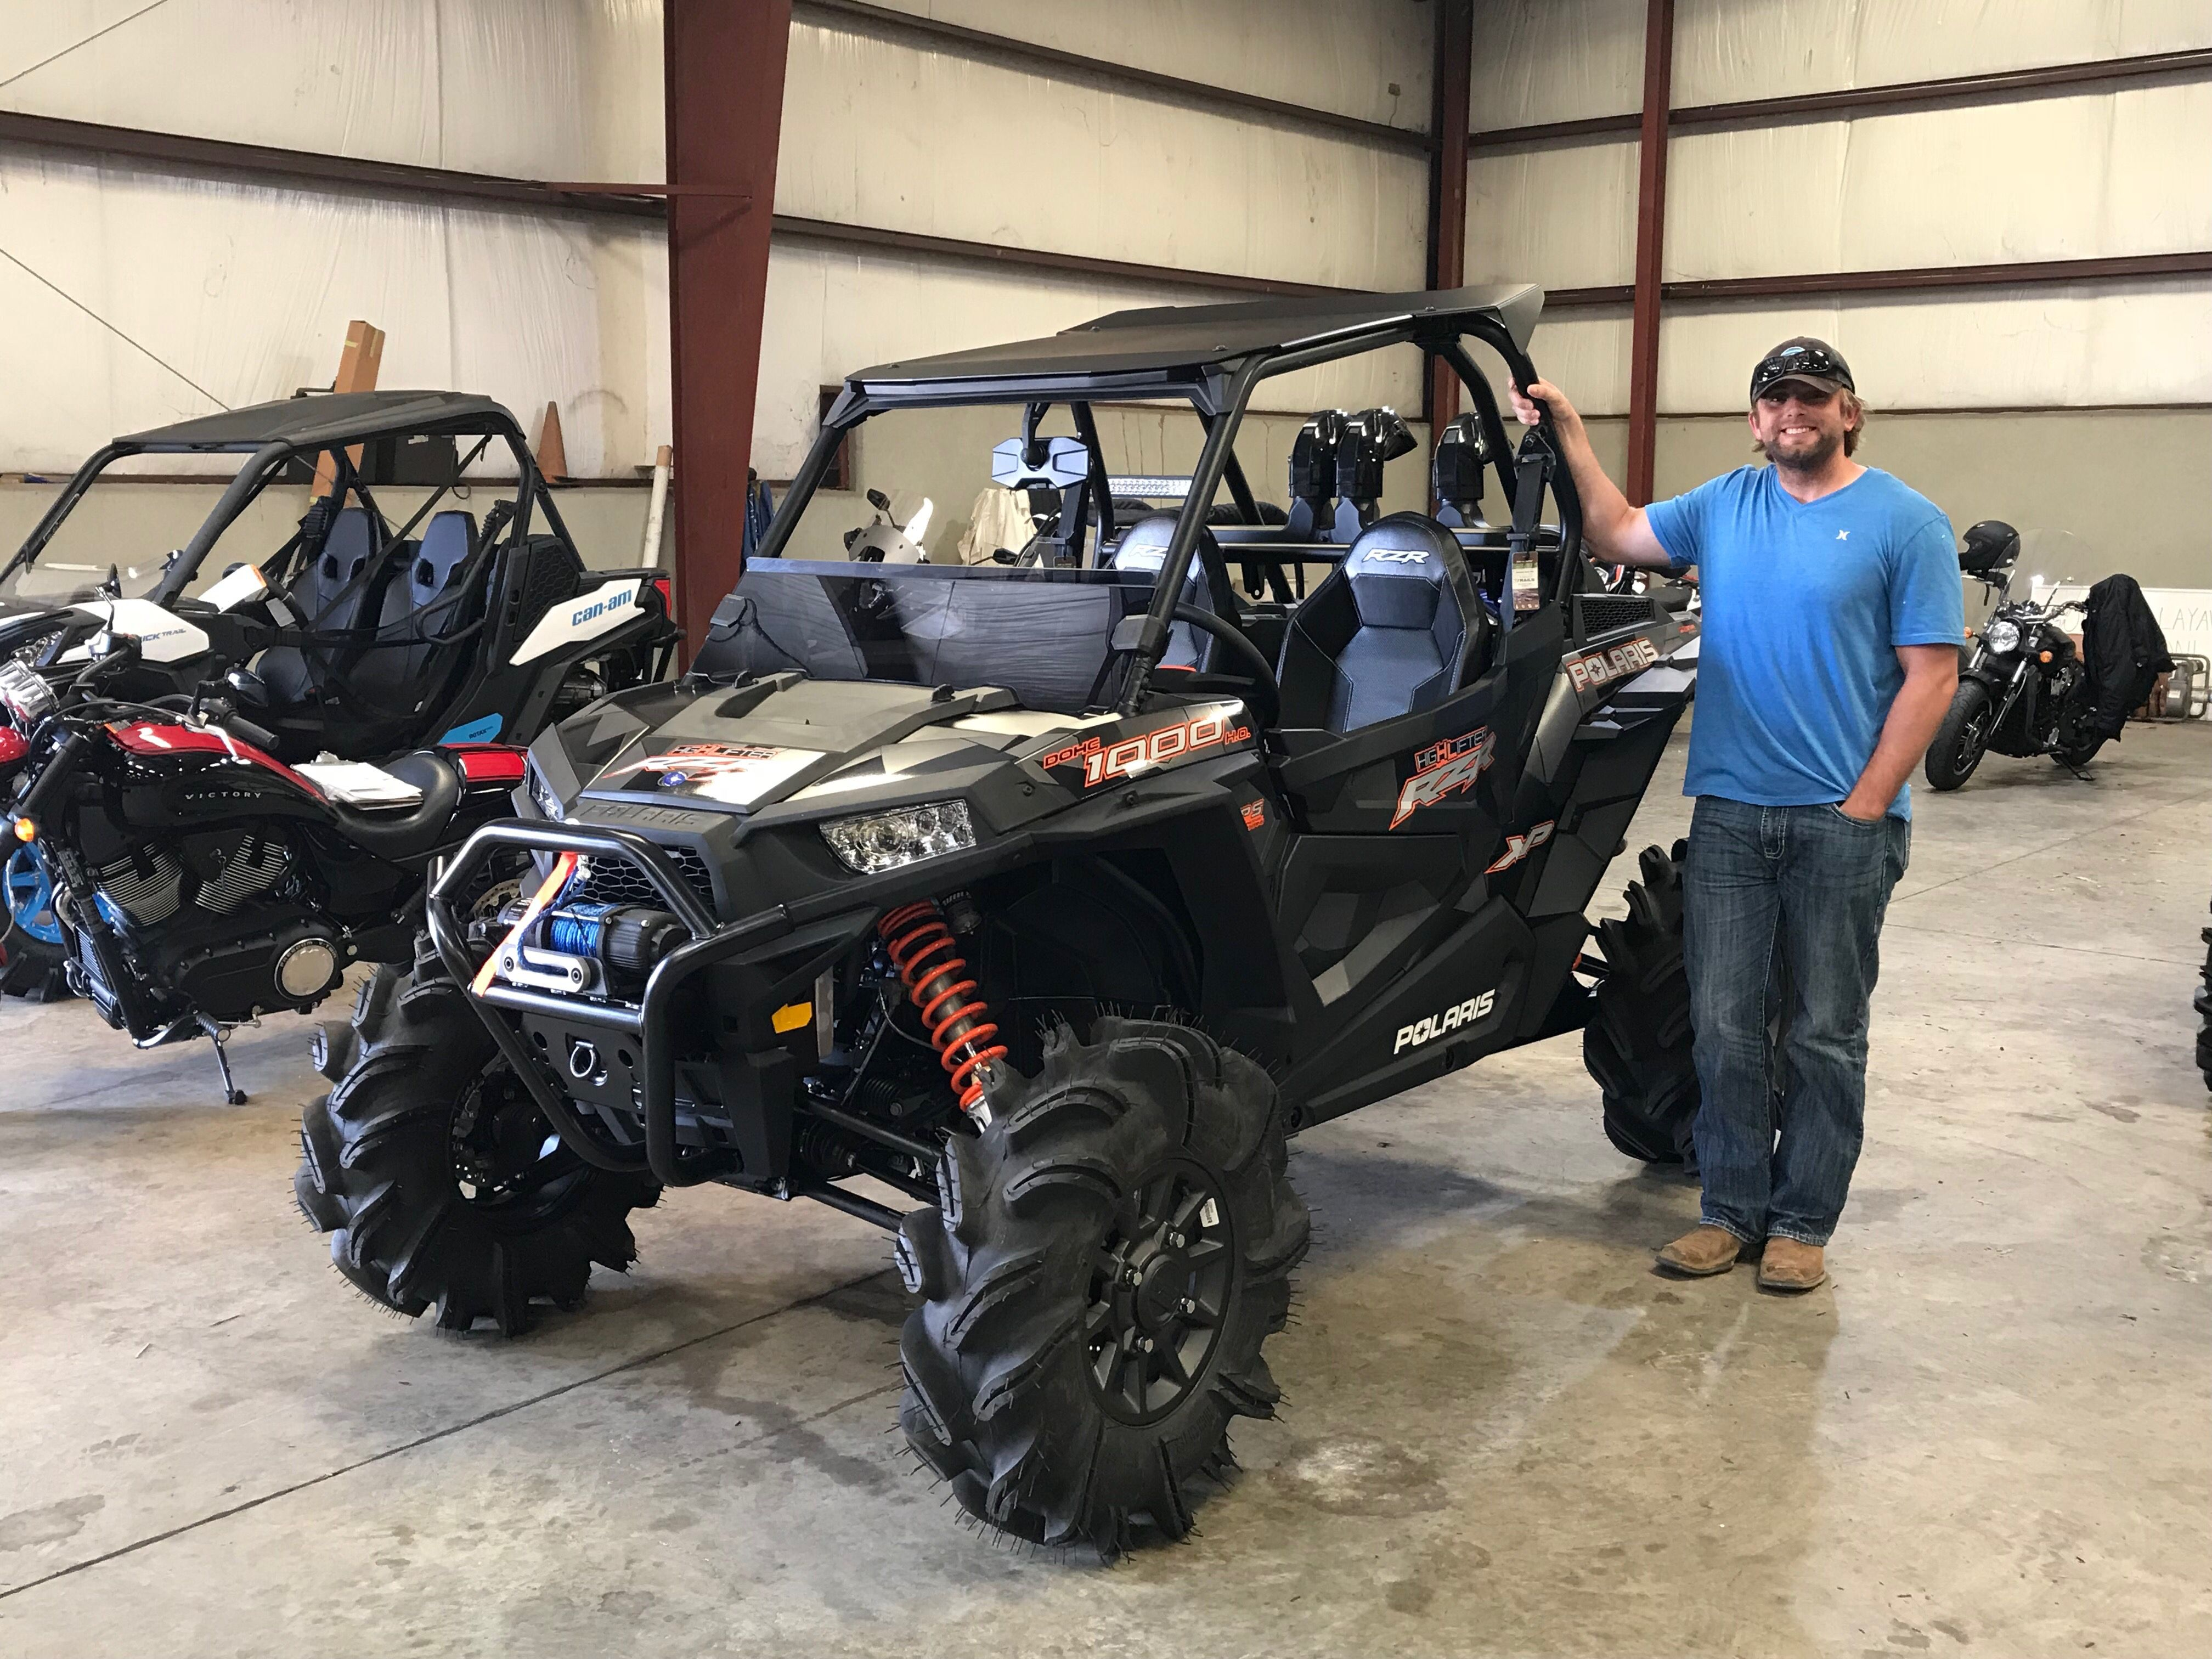 timeless design 3b057 8eaf8 Congratulations to Michael Kasell from Madison, MS for purchasing a 2018  Polaris RZR XP 1000 High Lifter Edition at Hattiesburg Cycles.  polaris